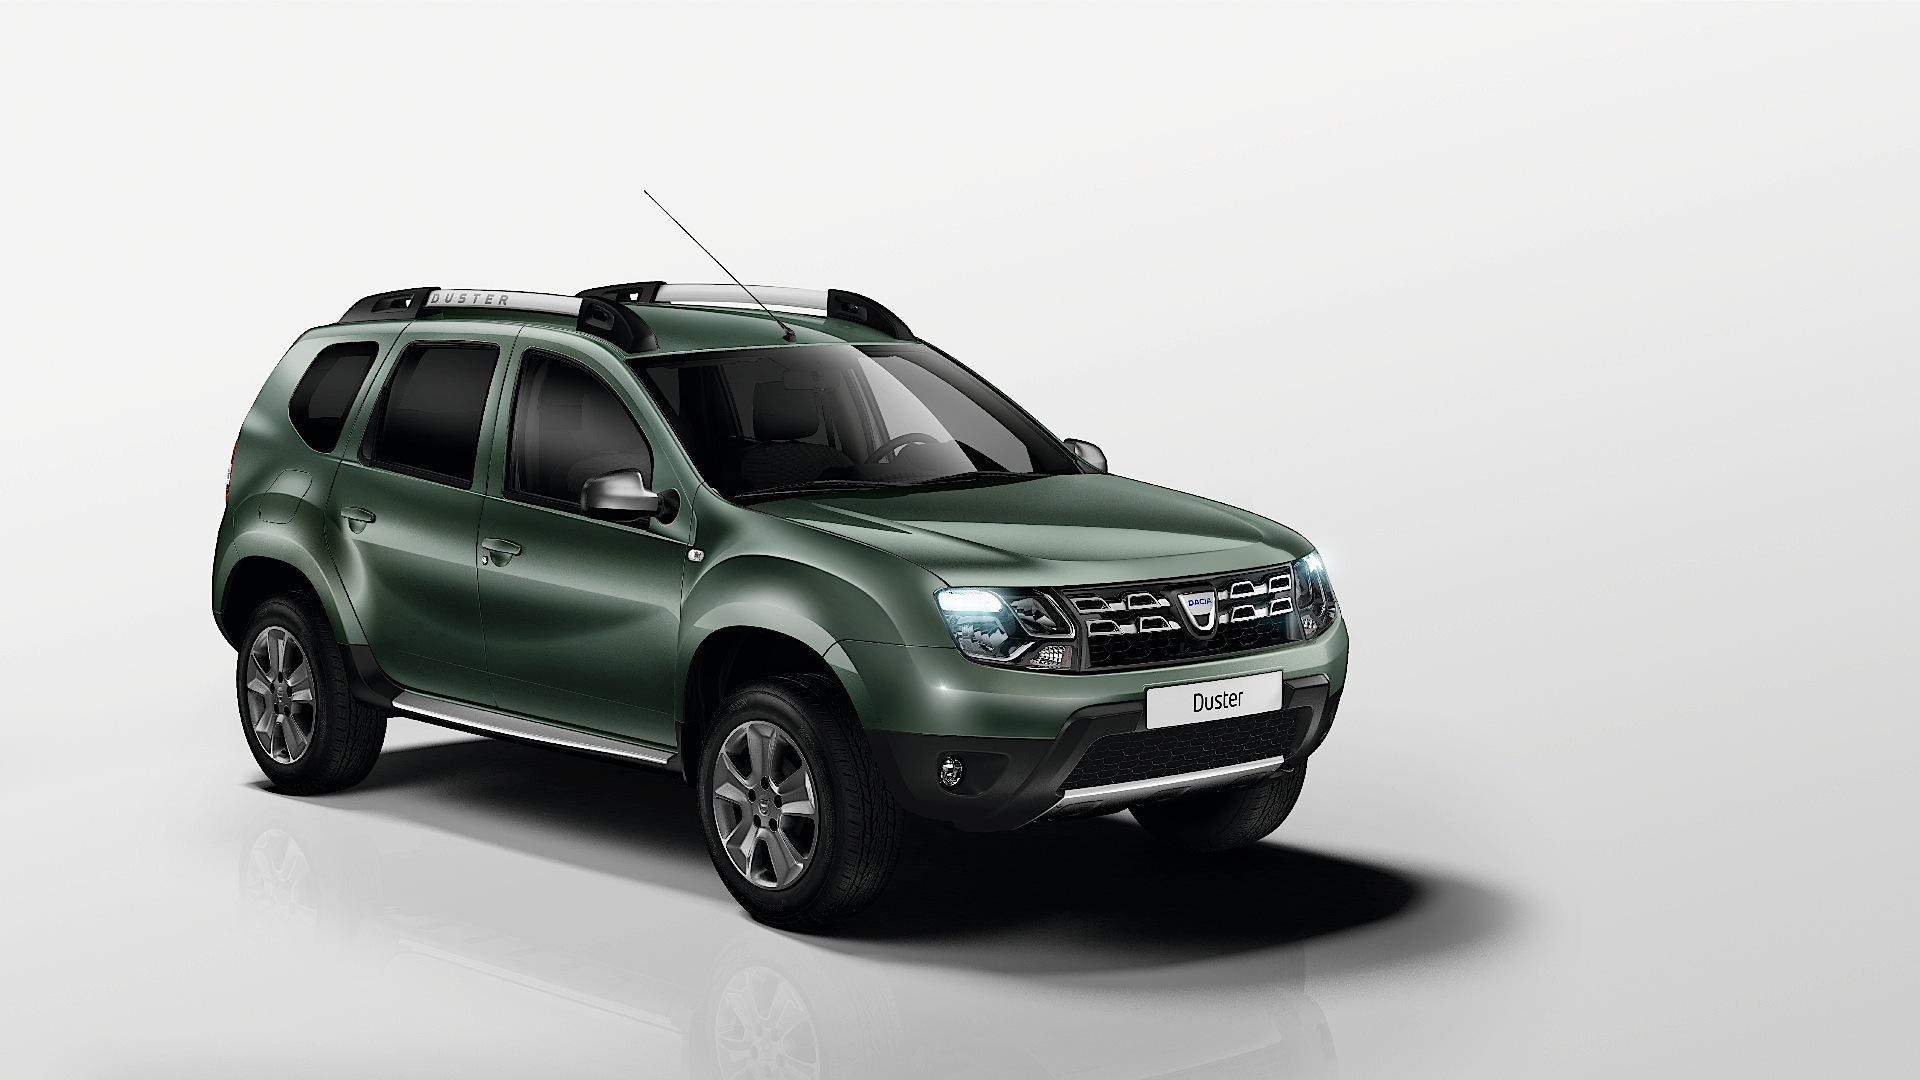 Dacia duster specs 2013 2014 2015 2016 2017 for Dacia duster specifications